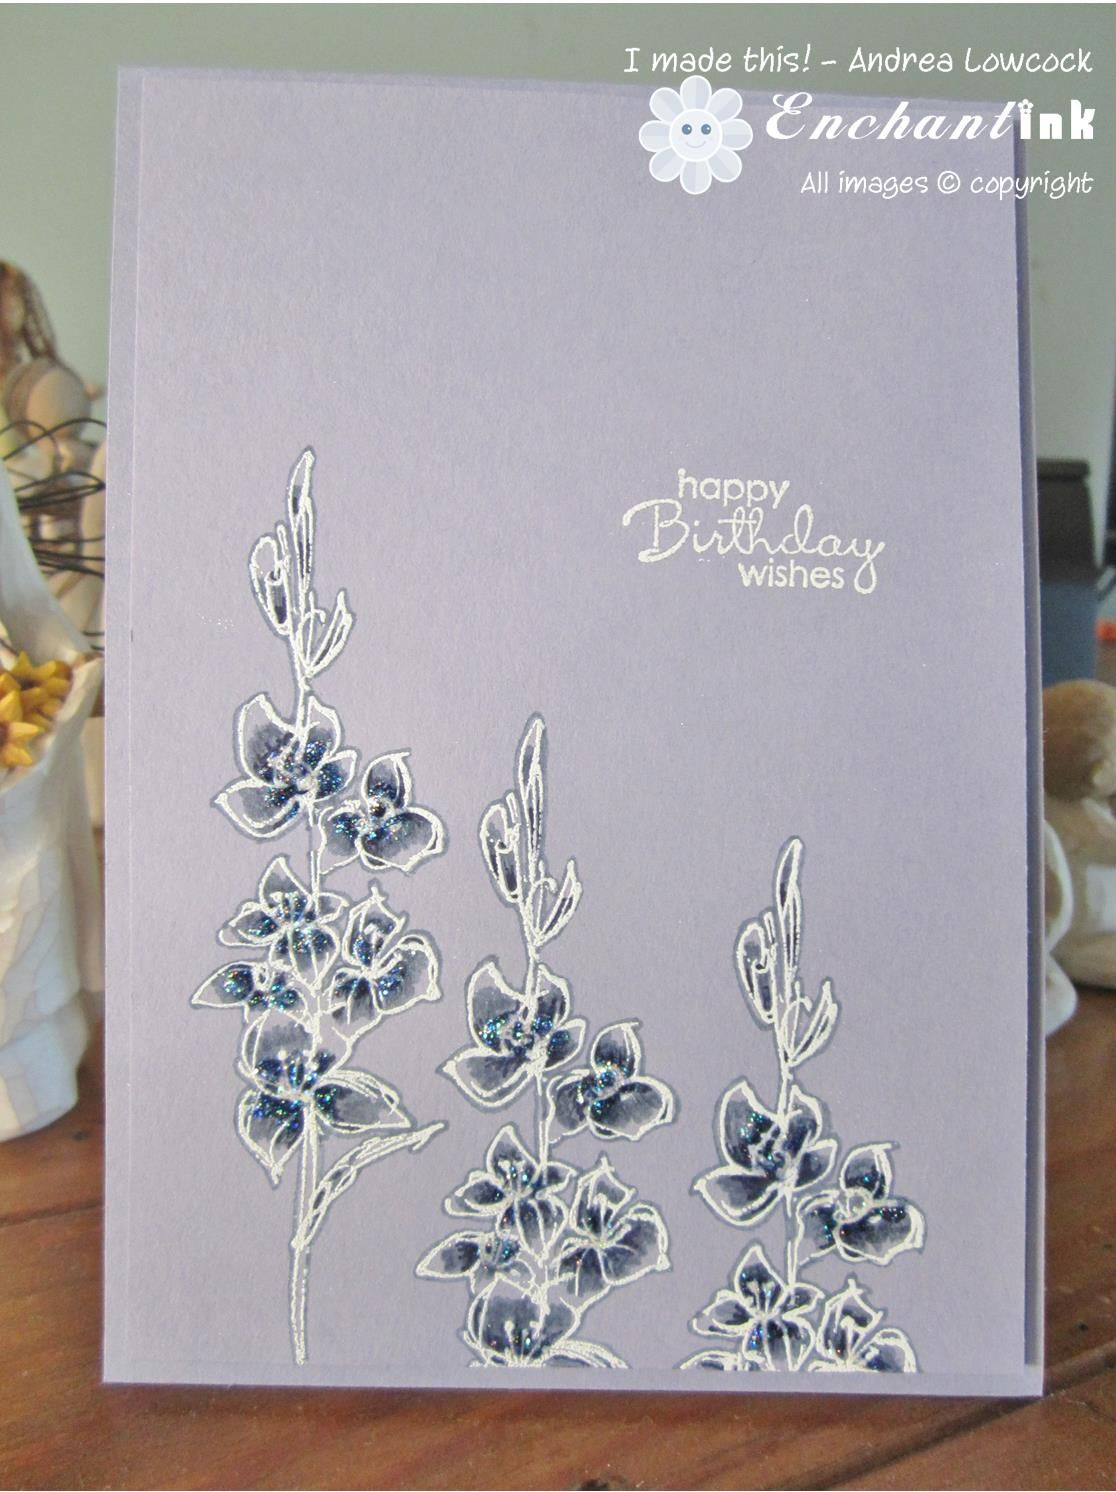 Fast fabulous sparkle handmade birthday cards cards and card ideas cardmaking handmade birthday card bookmarktalkfo Image collections